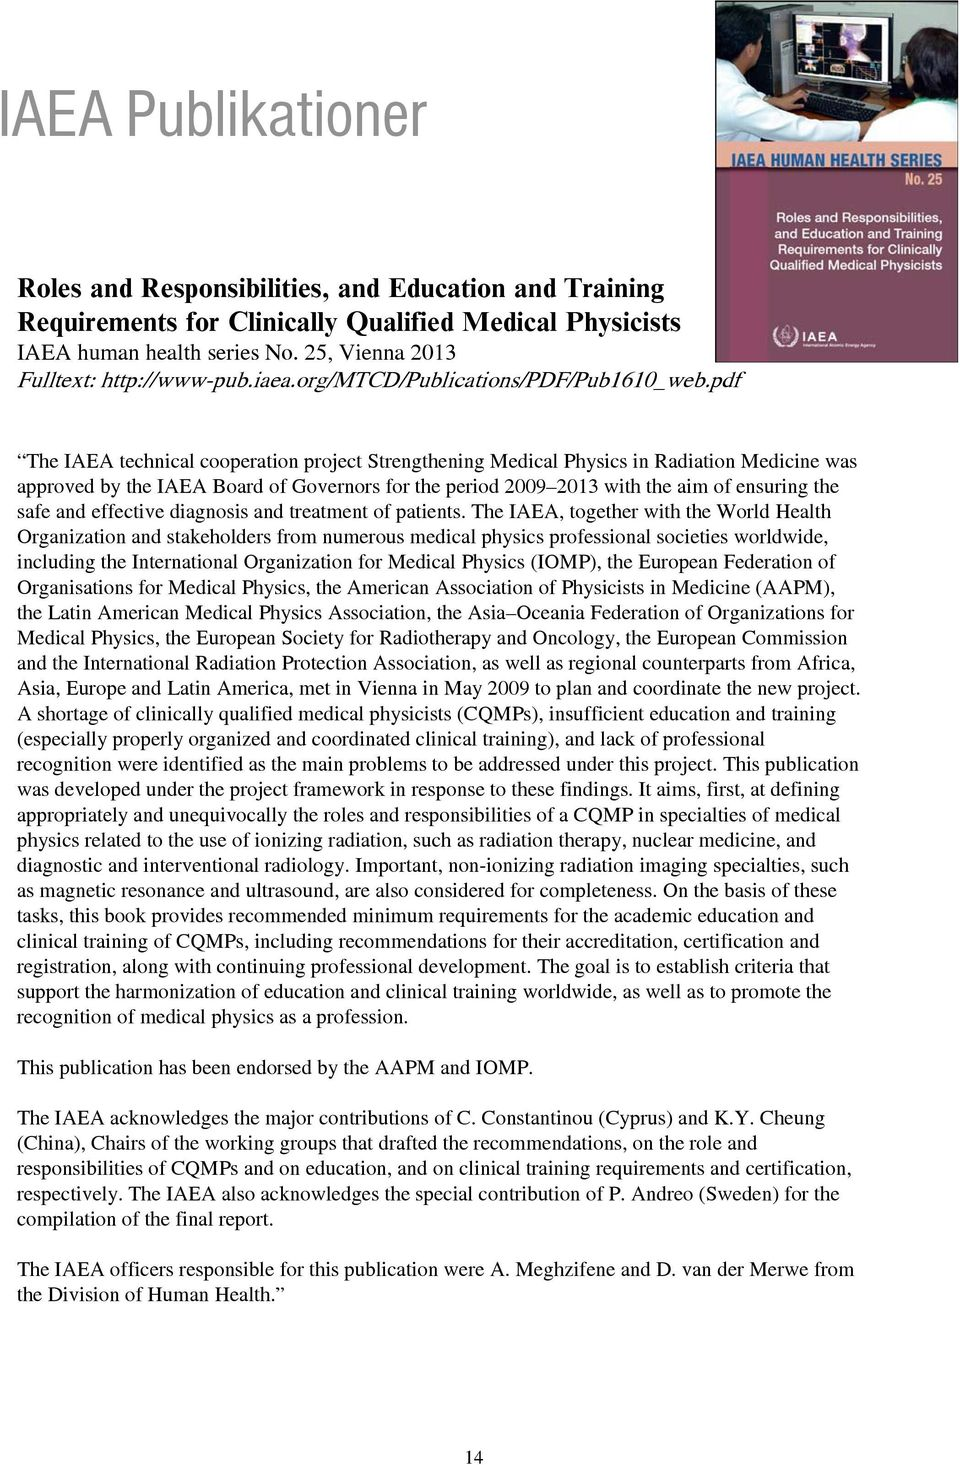 pdf The IAEA technical cooperation project Strengthening Medical Physics in Radiation Medicine was approved by the IAEA Board of Governors for the period 2009 2013 with the aim of ensuring the safe